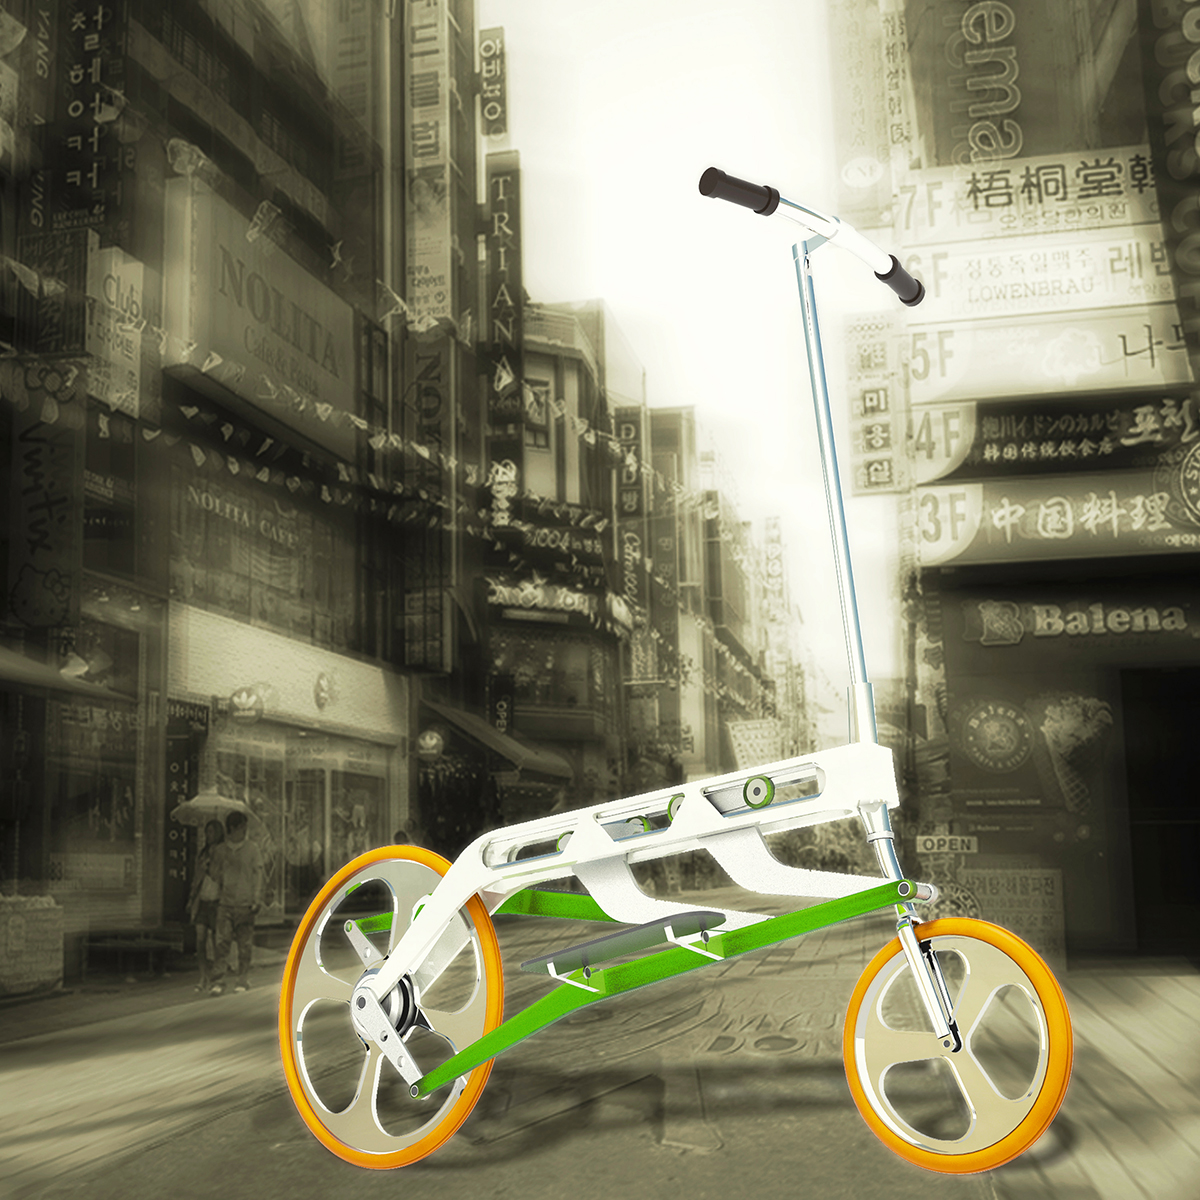 A radical new bicycle for the urban commuter  - 06